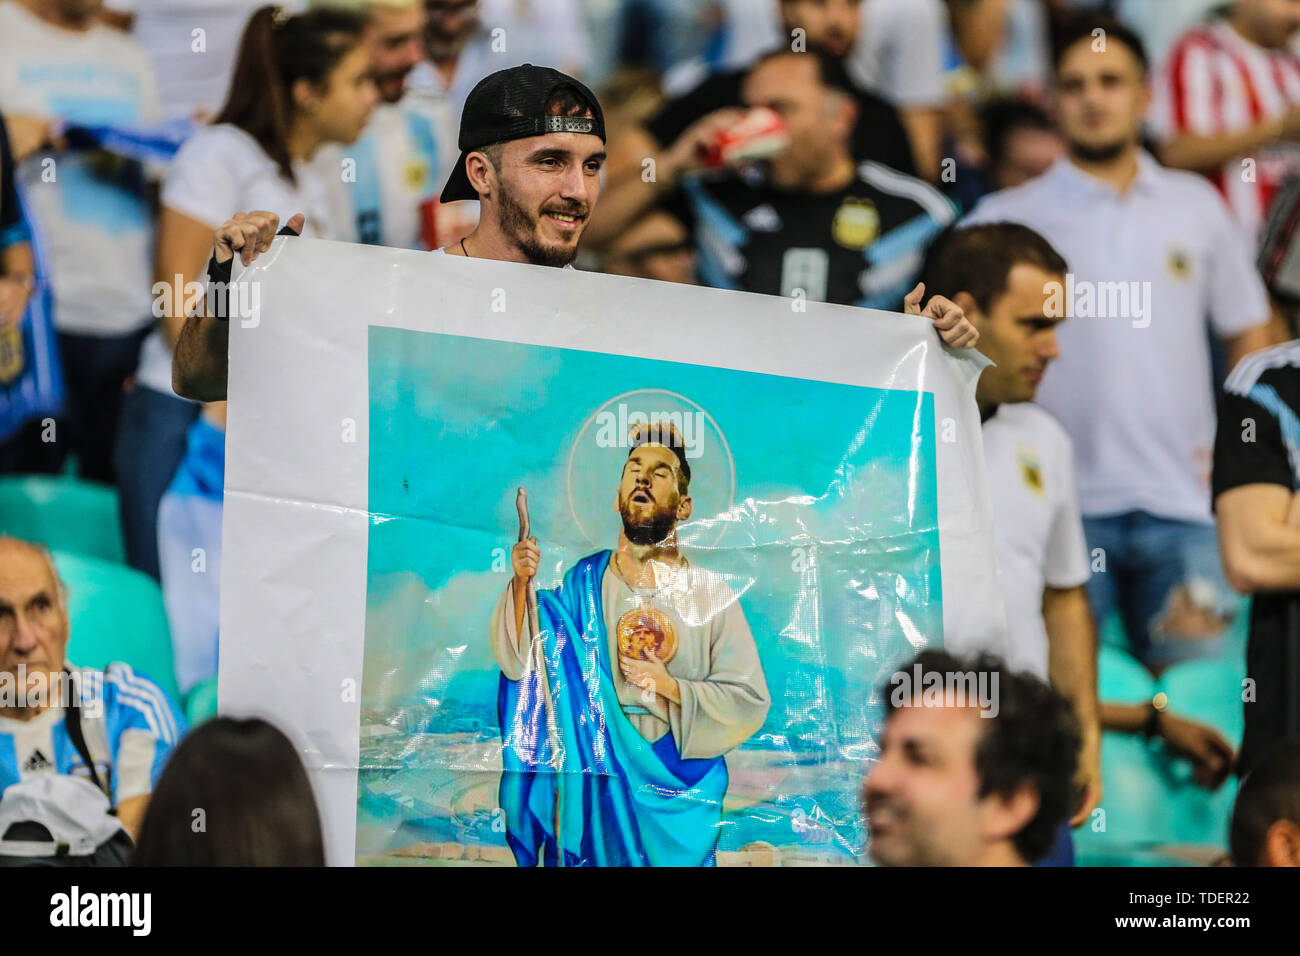 Salvador, Brazil. 15th June, 2019. Brazil. 15th June, 2019. Game of the match between Argentina X Colombia valid for Group B of Copa America 2019, in the Arena Fonte Nova, in Salvador, this Saturday (15). Credit: ZUMA Press, Inc./Alamy Live News Stock Photo